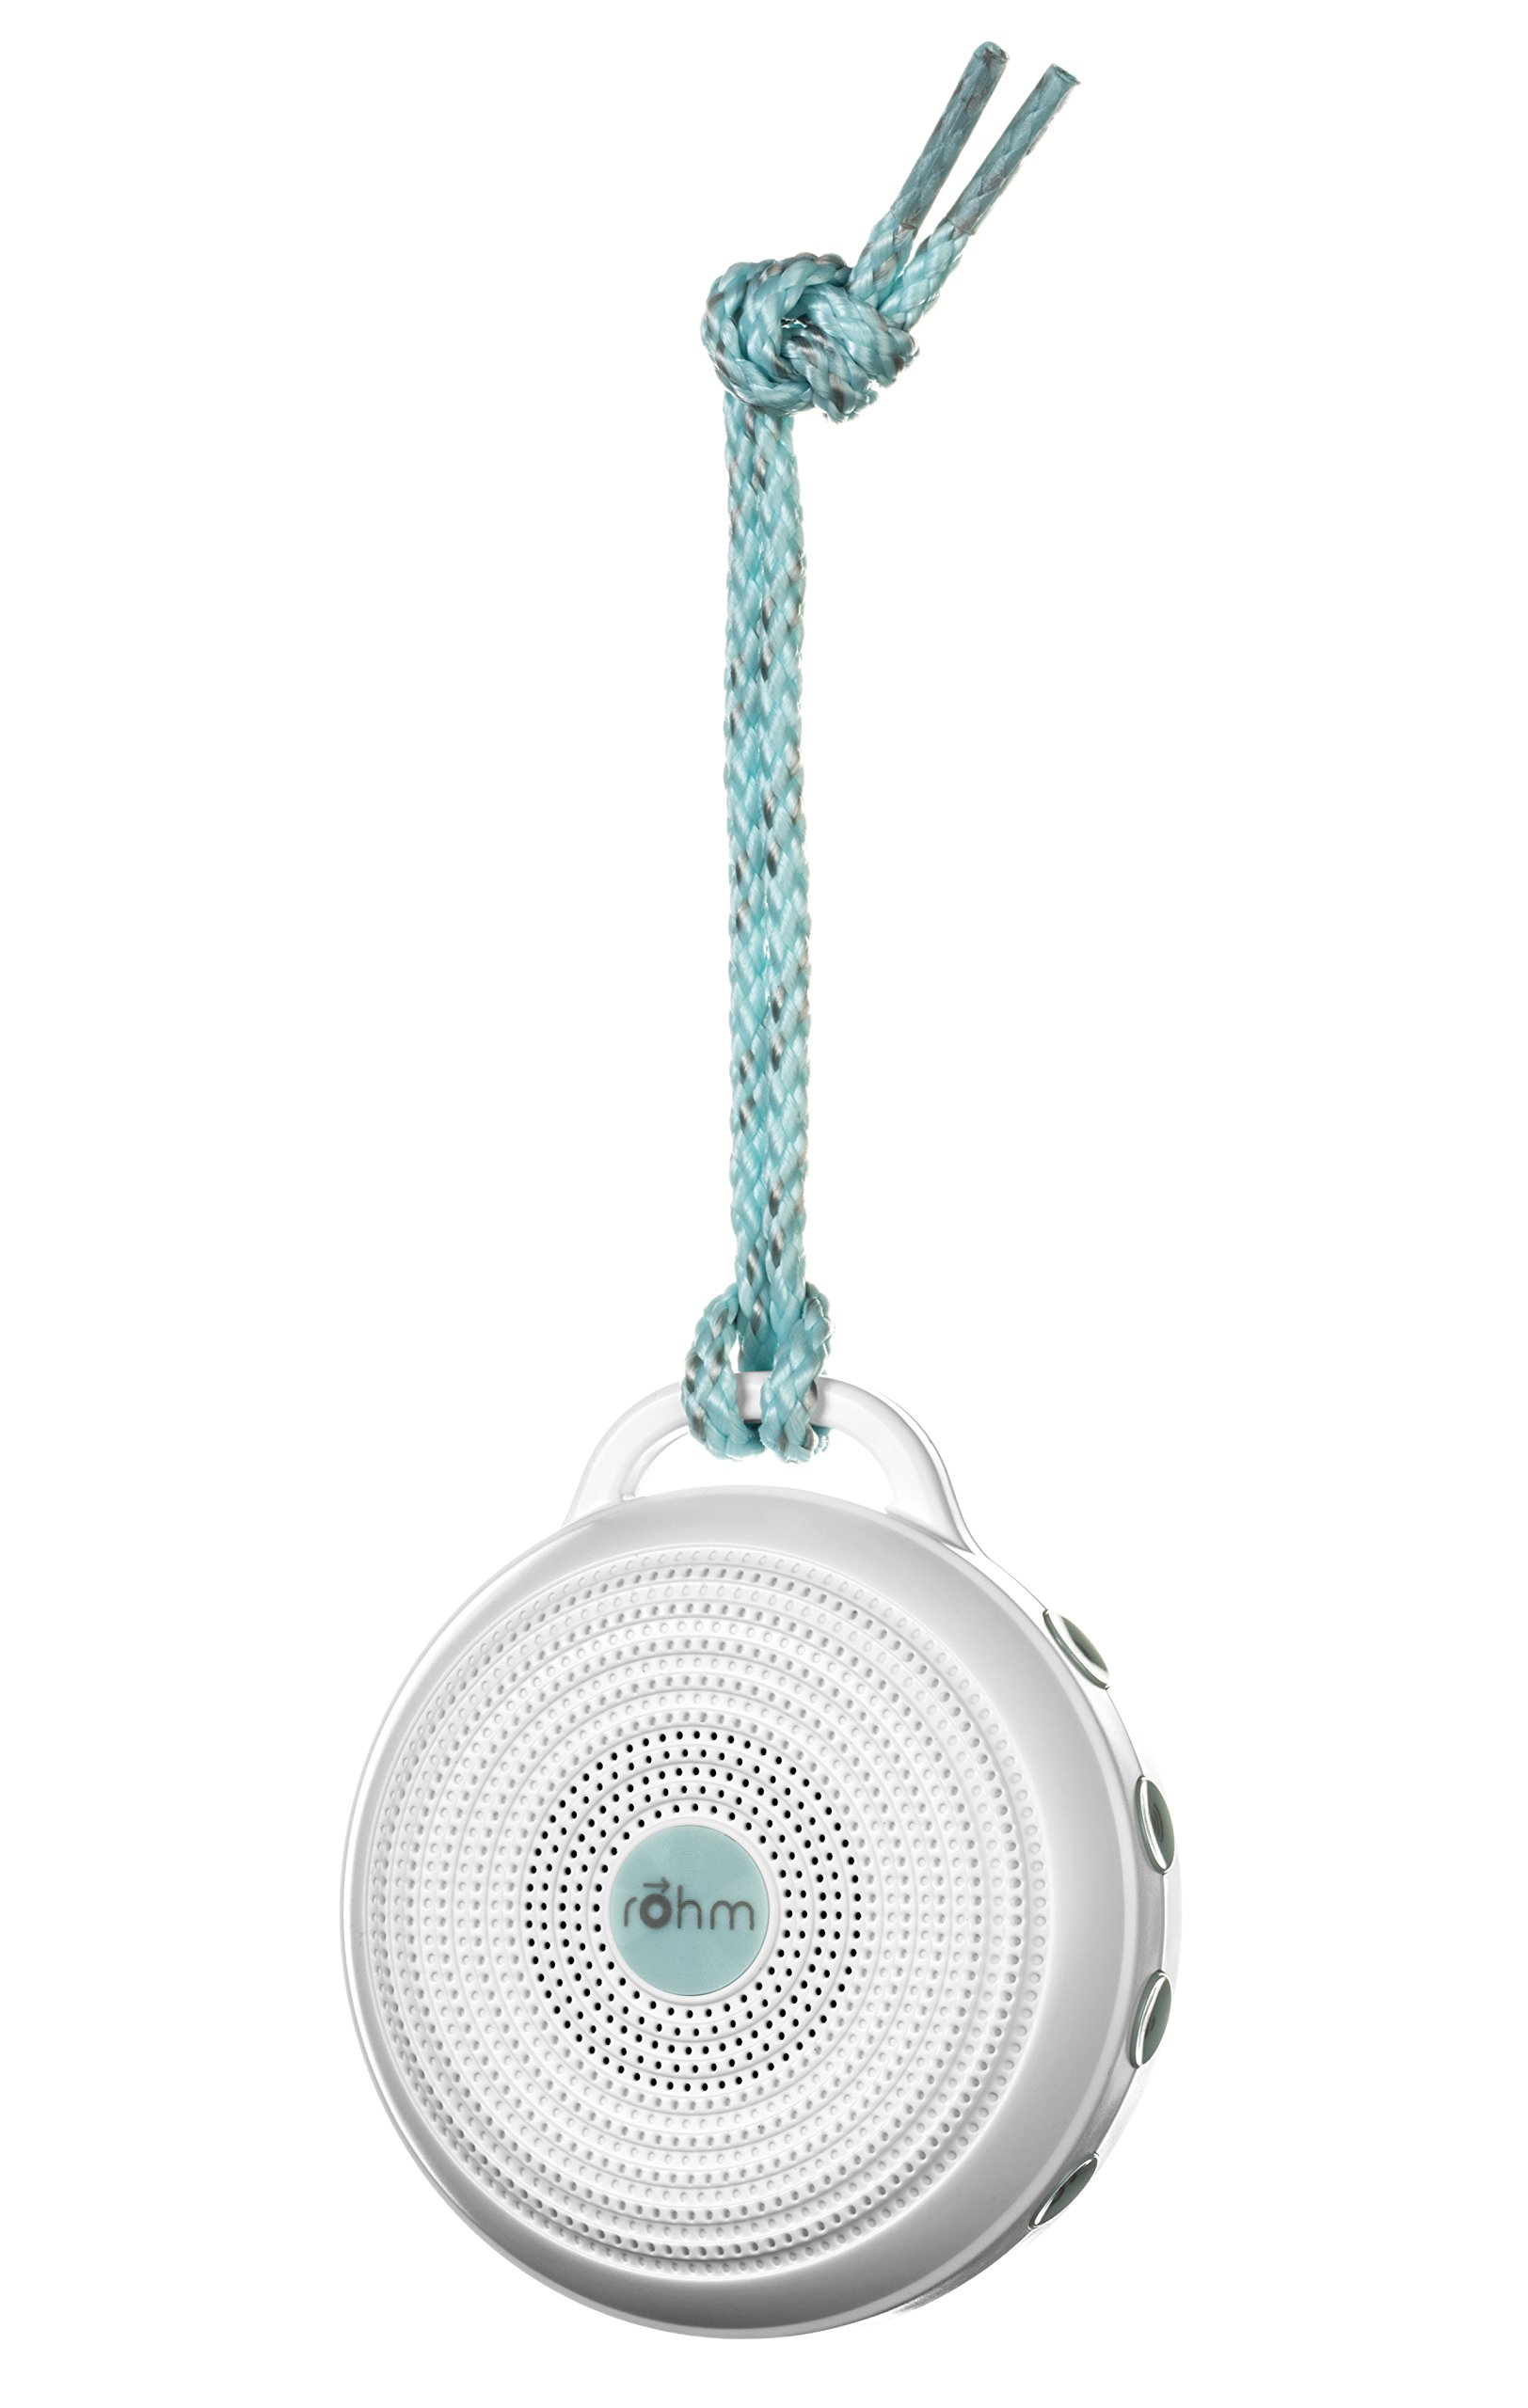 Marpac Rohm Portable White Noise Sound Machine, Electronic, White, 3.7 Ounce by Marpac (Image #4)